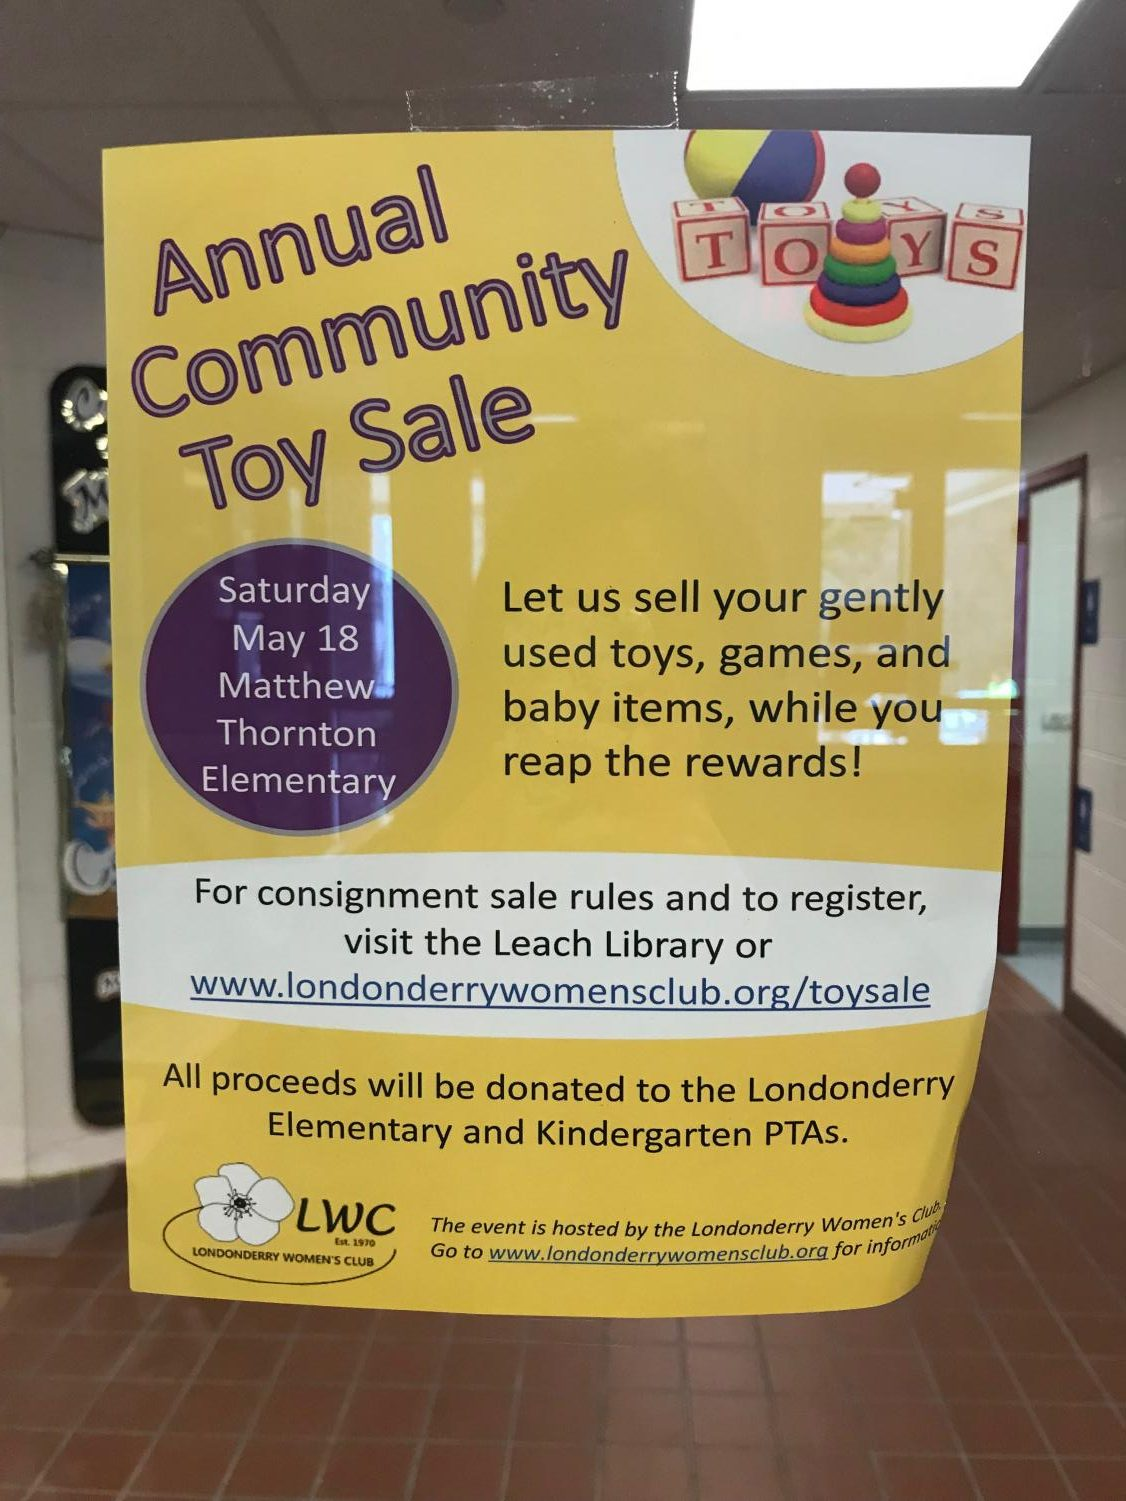 The Londonderry Women's Club is hosting their annual toy drive this Sat. May 18 at matthew Thornton